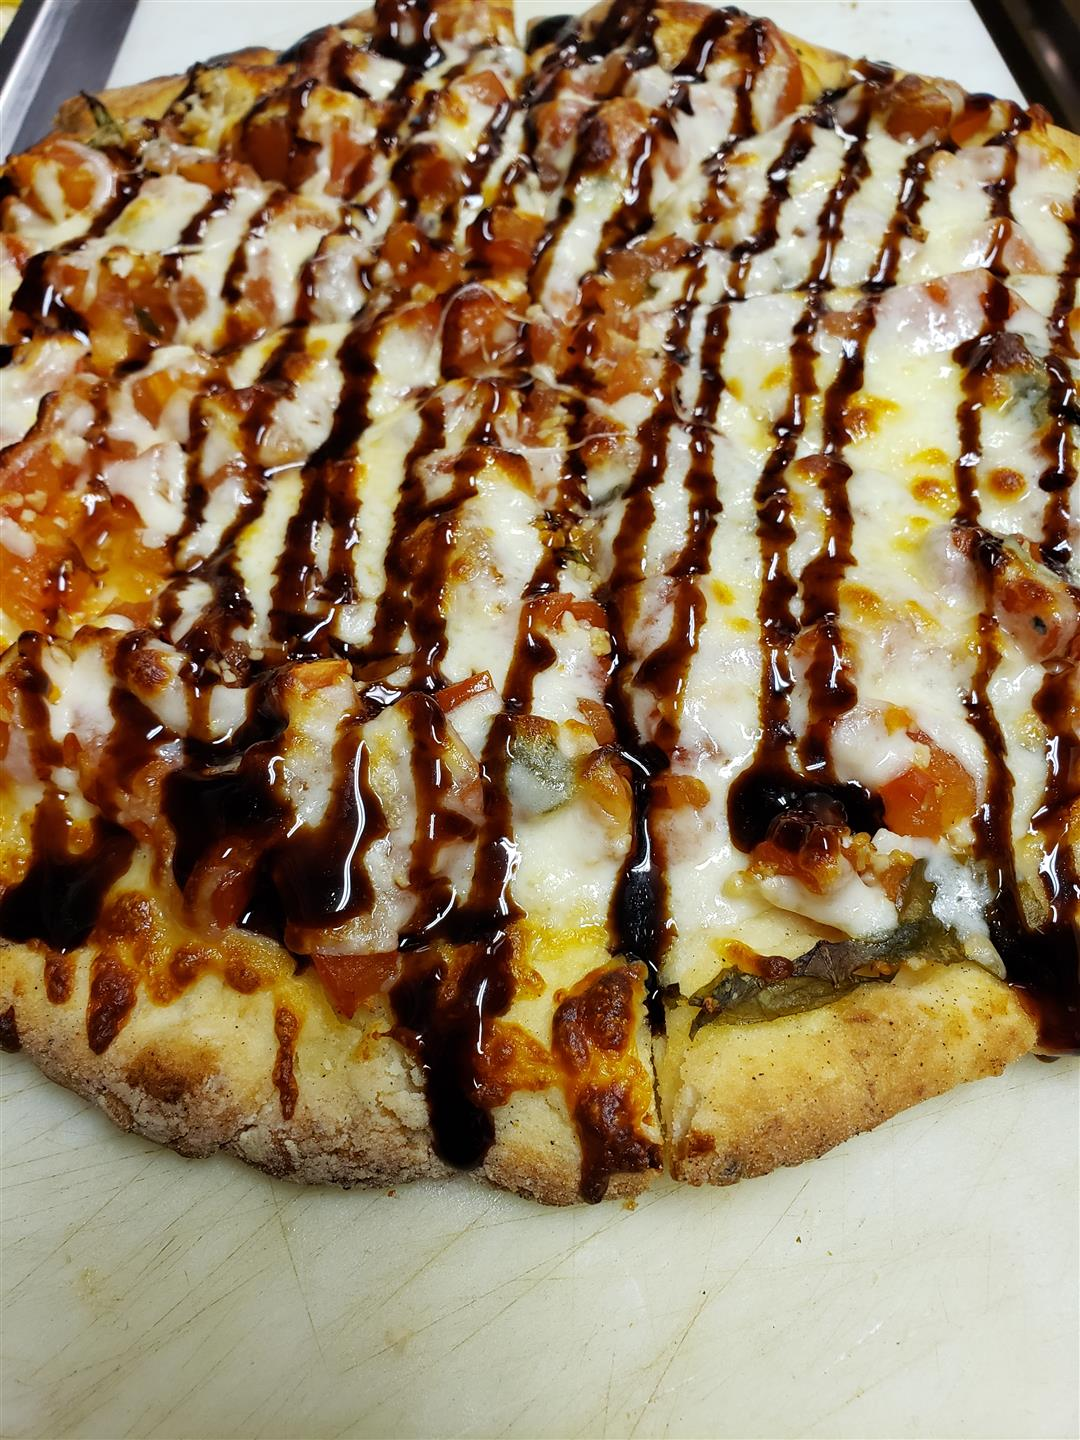 cauliflower crust pizza wuth cheese and bbq sauce